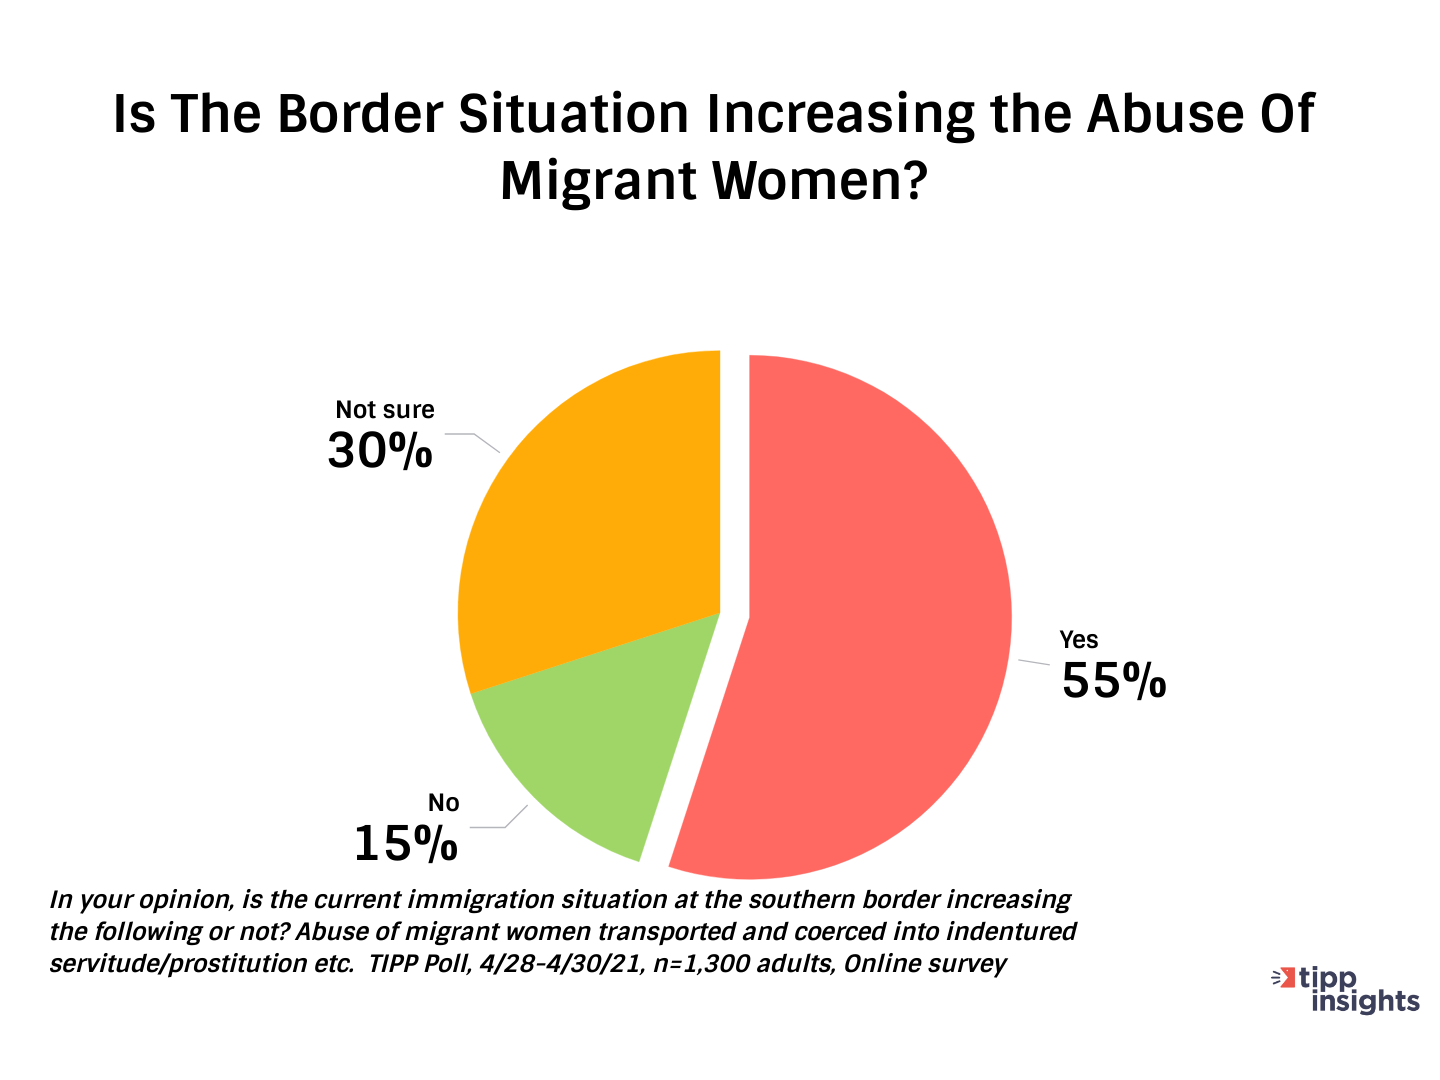 Americans Opinion On Situation At Southern Border, Womens Rights, - Chart TIPP Poll Results